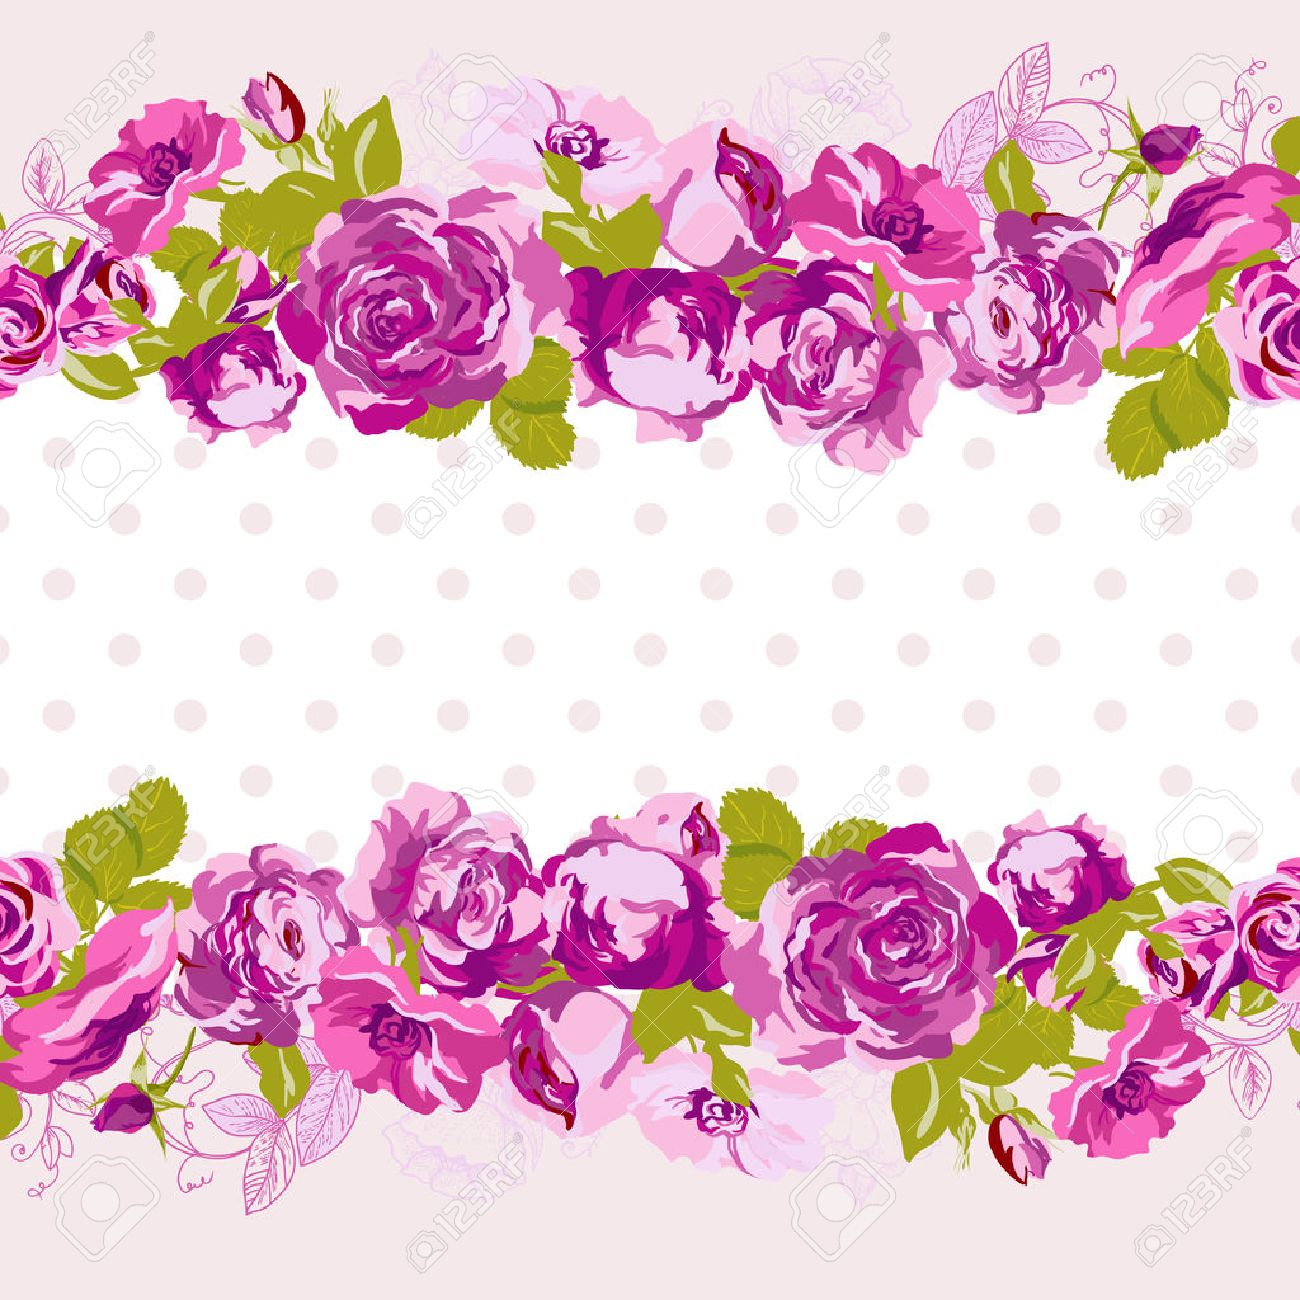 borders for birthday greeting cards ; 29255650-seamless-border-of-blossom-roses-vector-floral-greeting-card-spring-background-for-wedding-birthday-